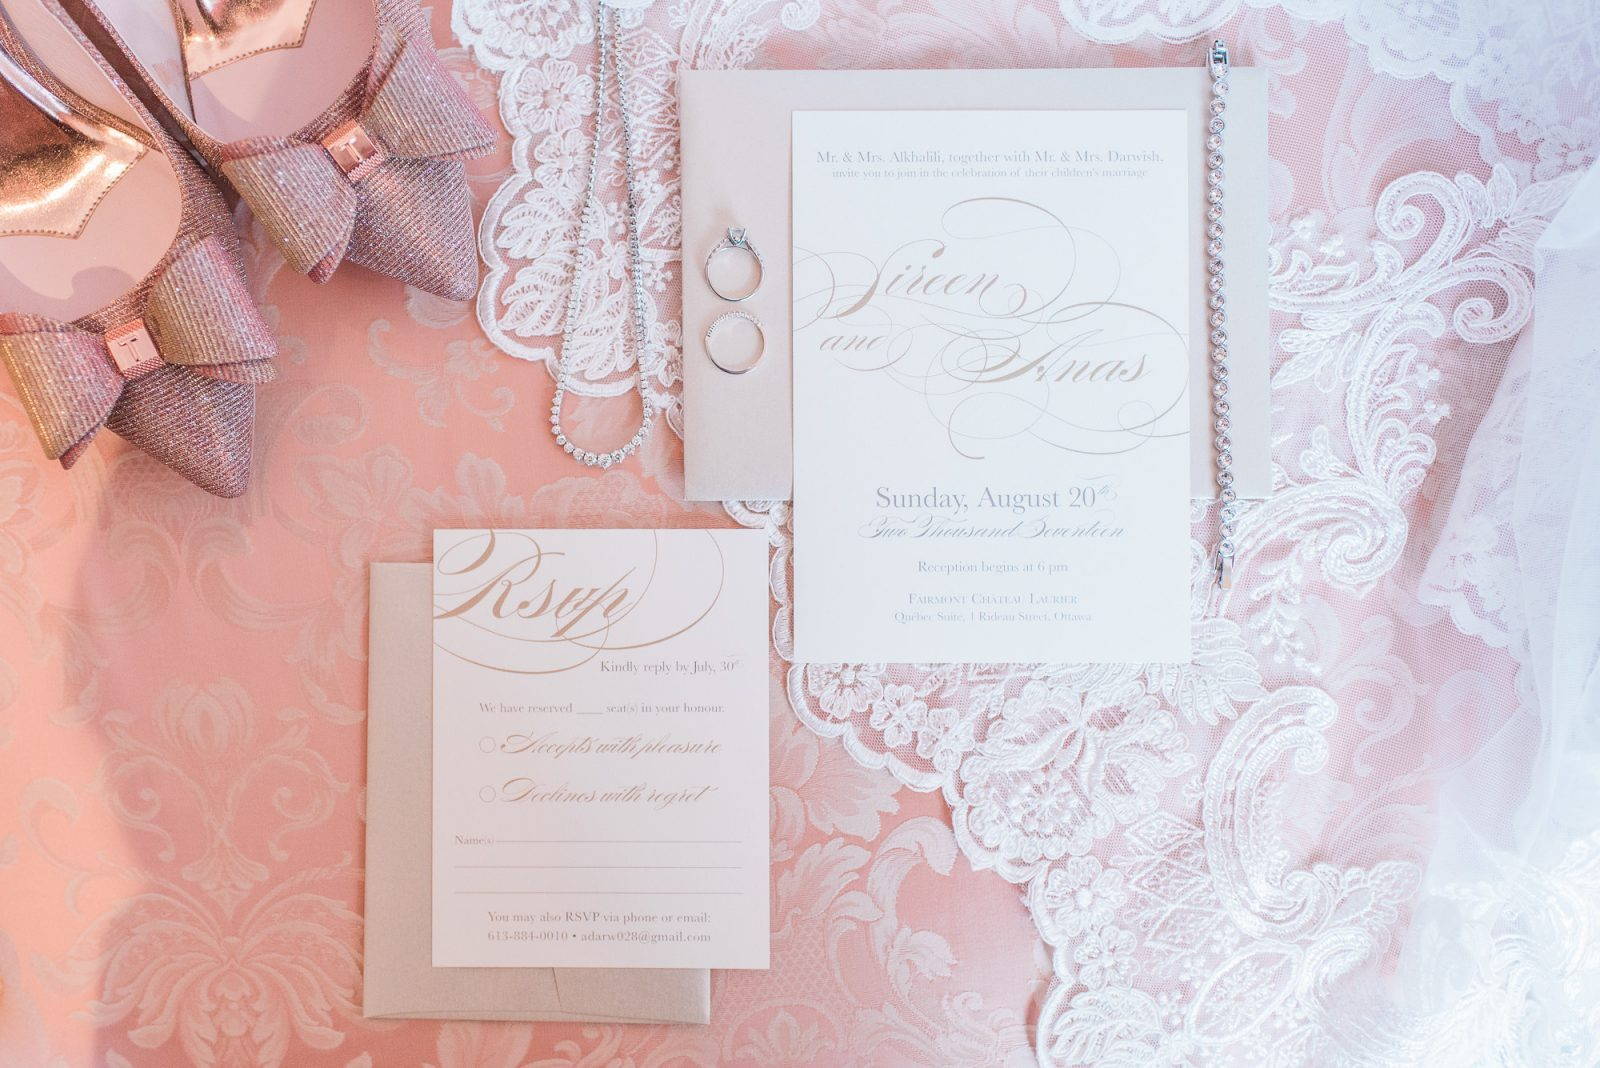 classic invitation suite - pink wedding details - styled details for wedding